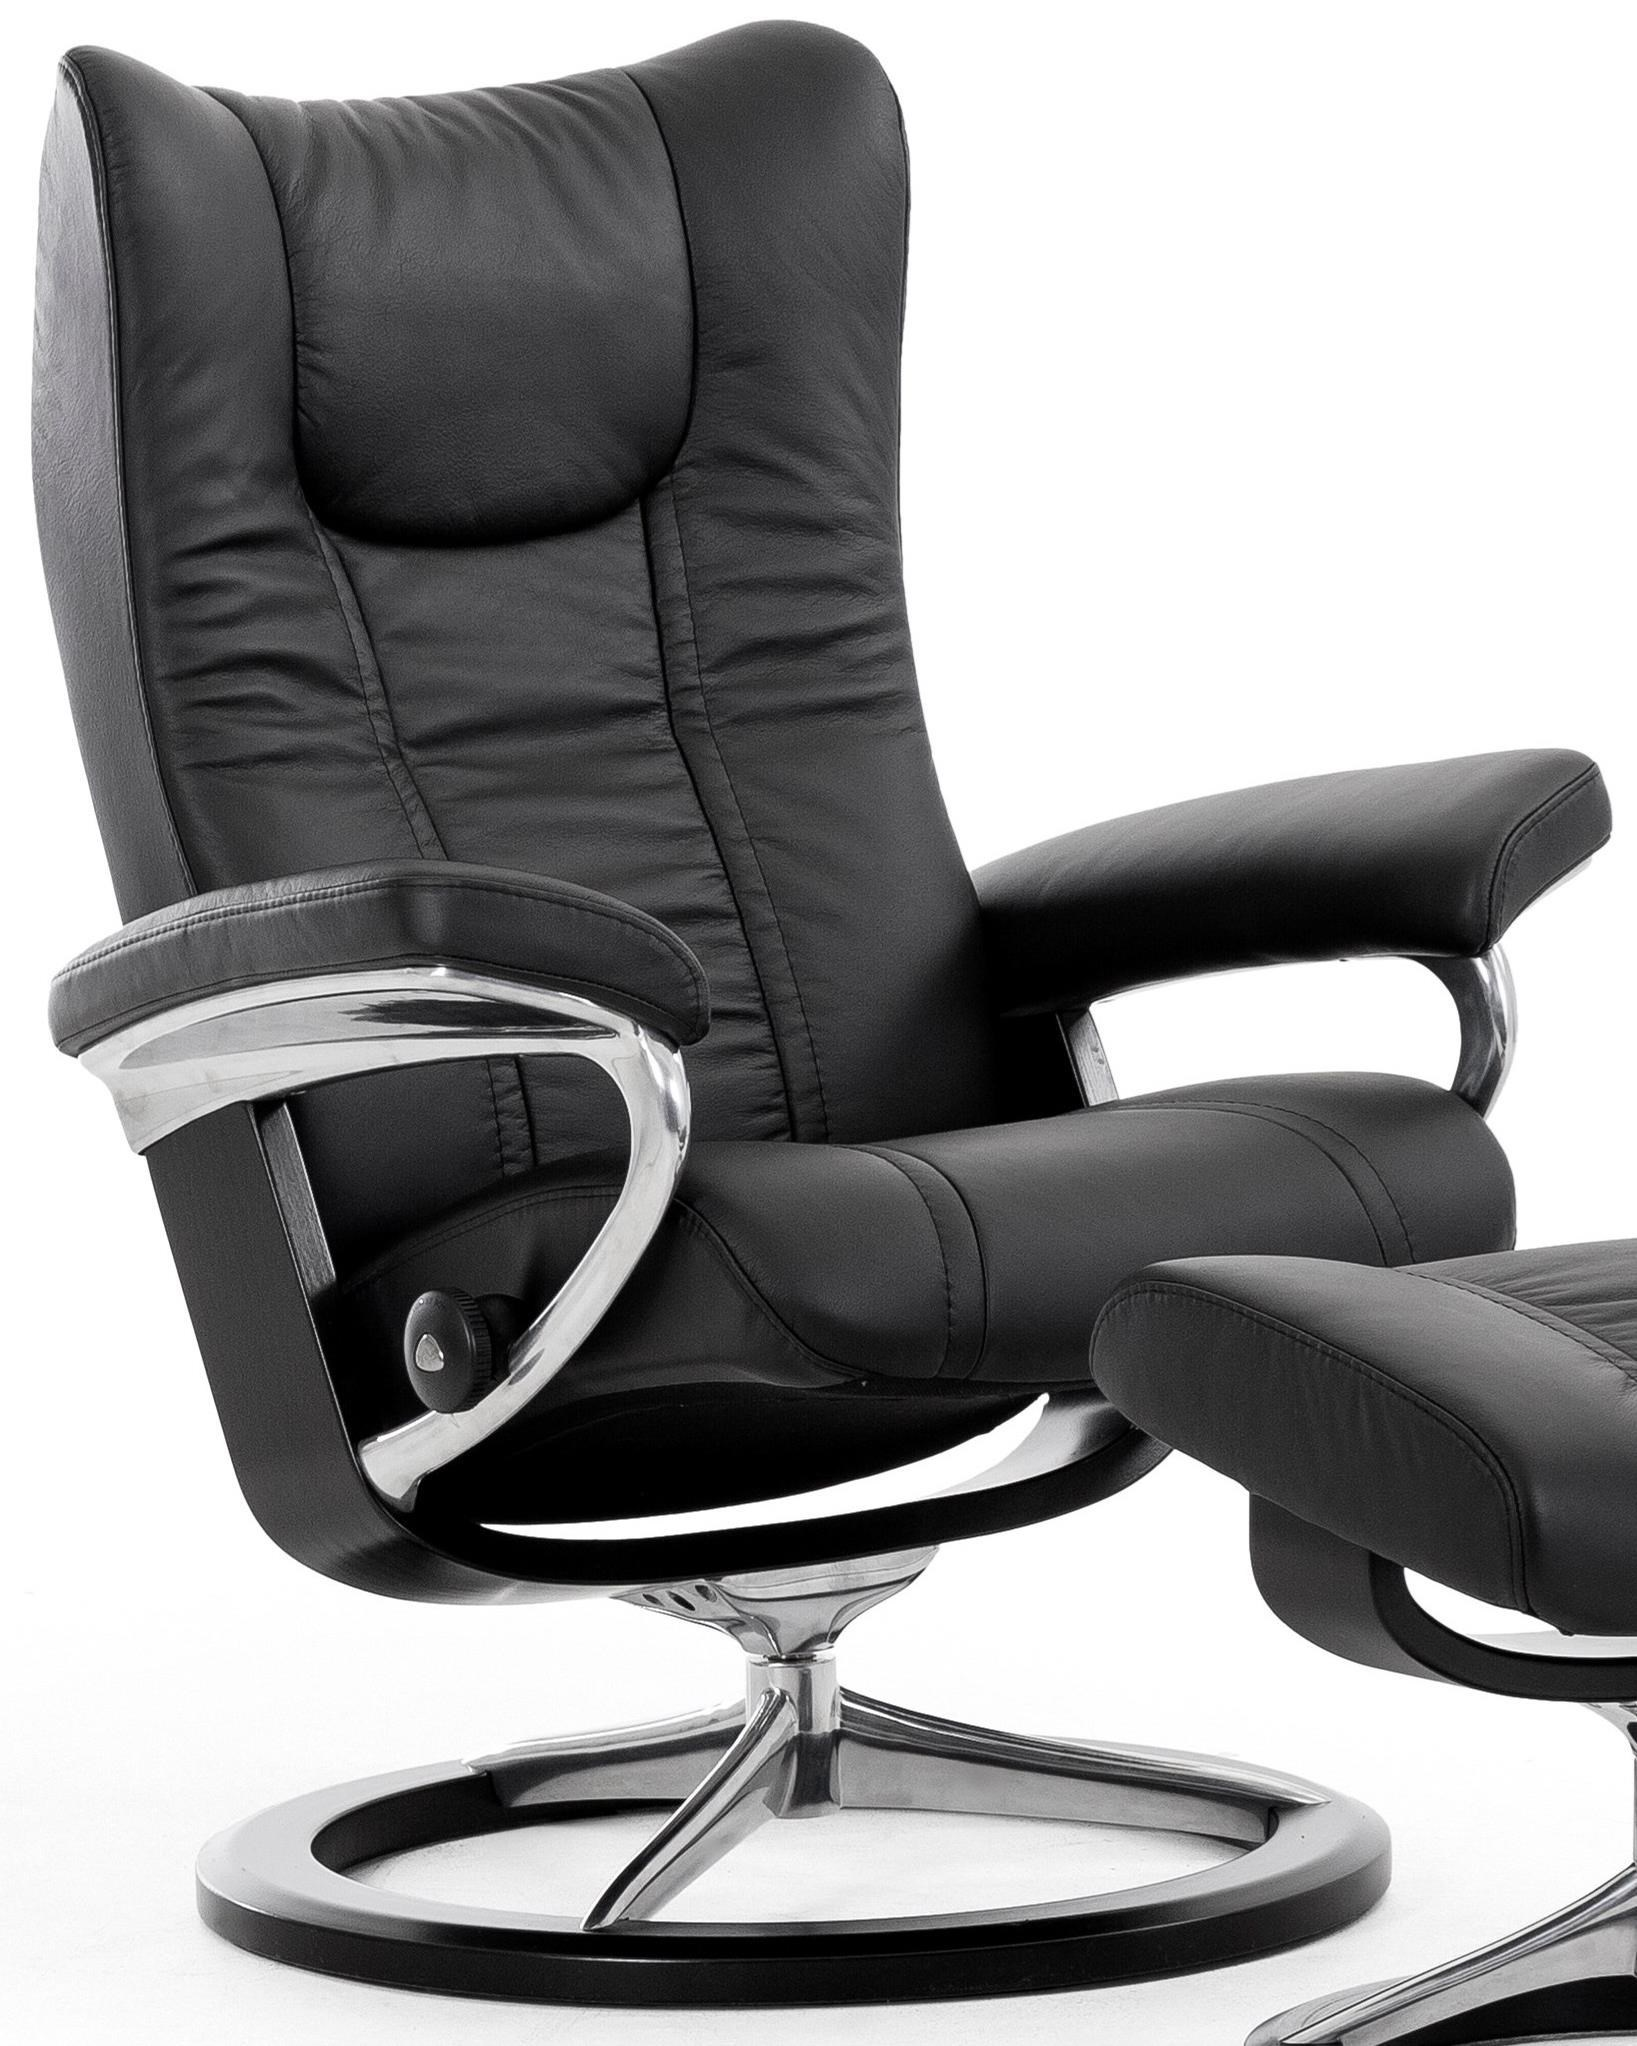 Stressless Outlet Wing Medium Reclining Chair With Signature Base By Stressless At Hudson S Furniture